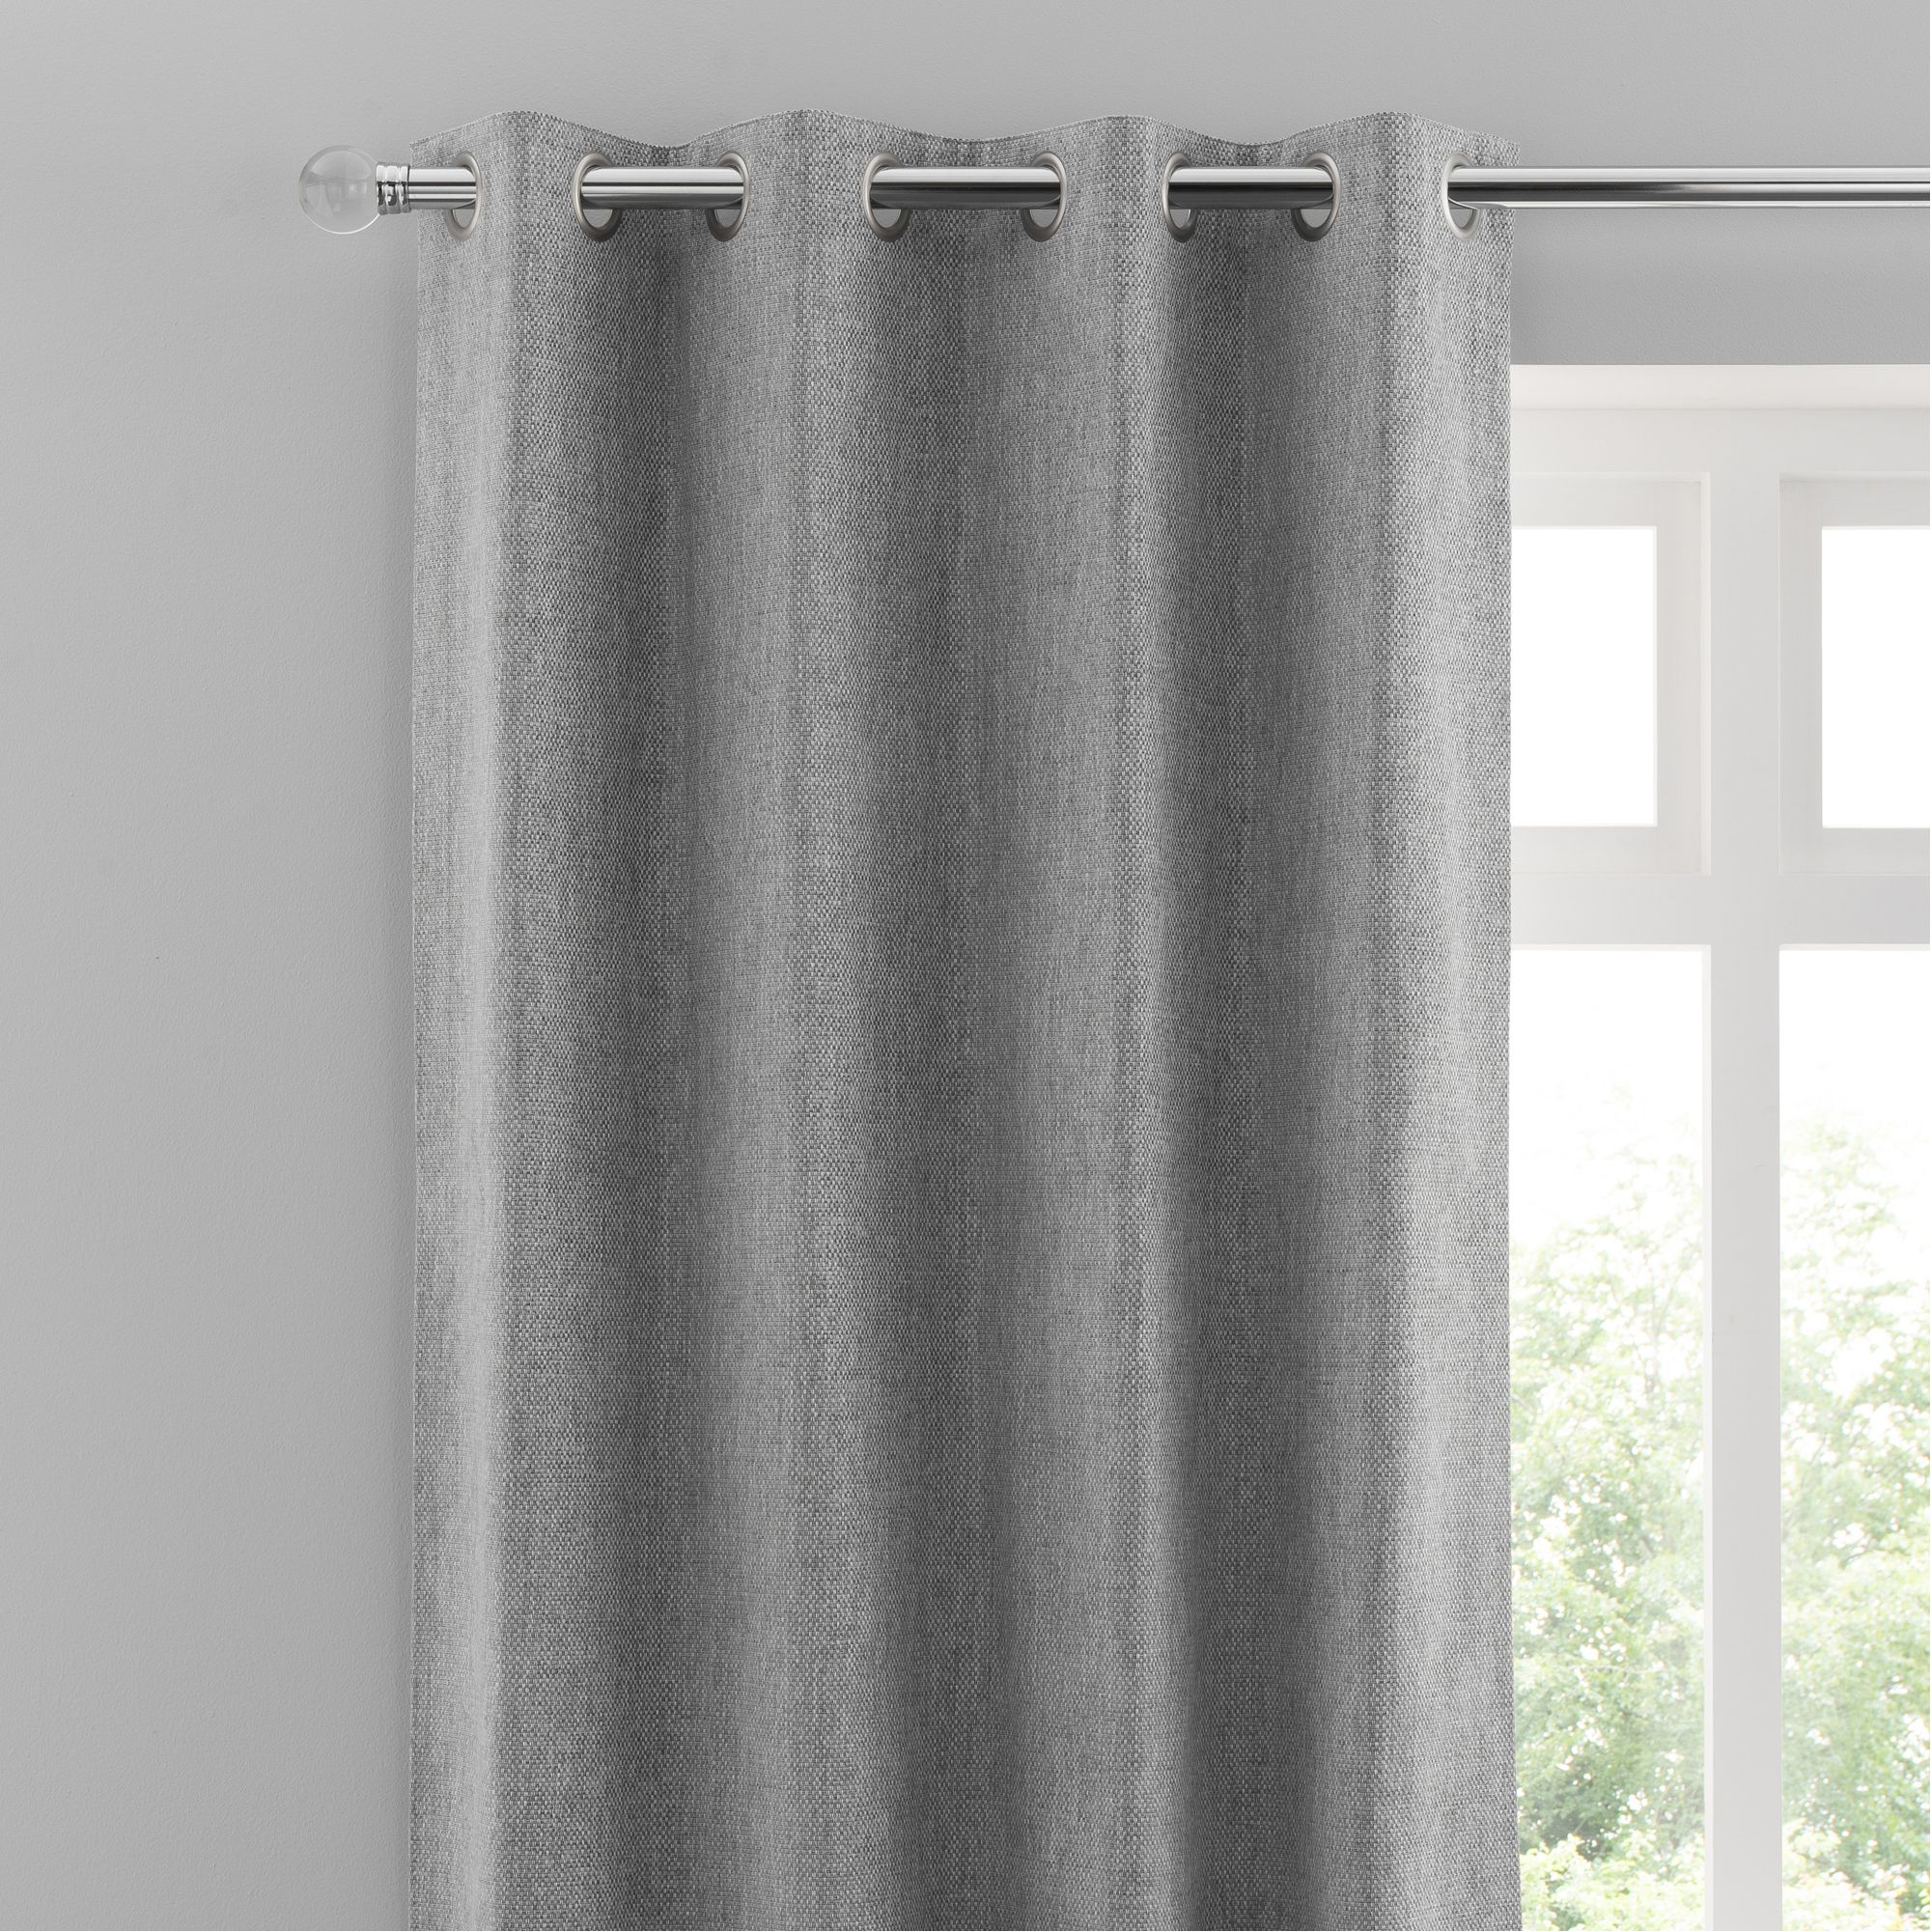 Oxford Dove Grey Chenille Eyelet Curtains Unique Curtains Curtains Grey Eyelet Curtains